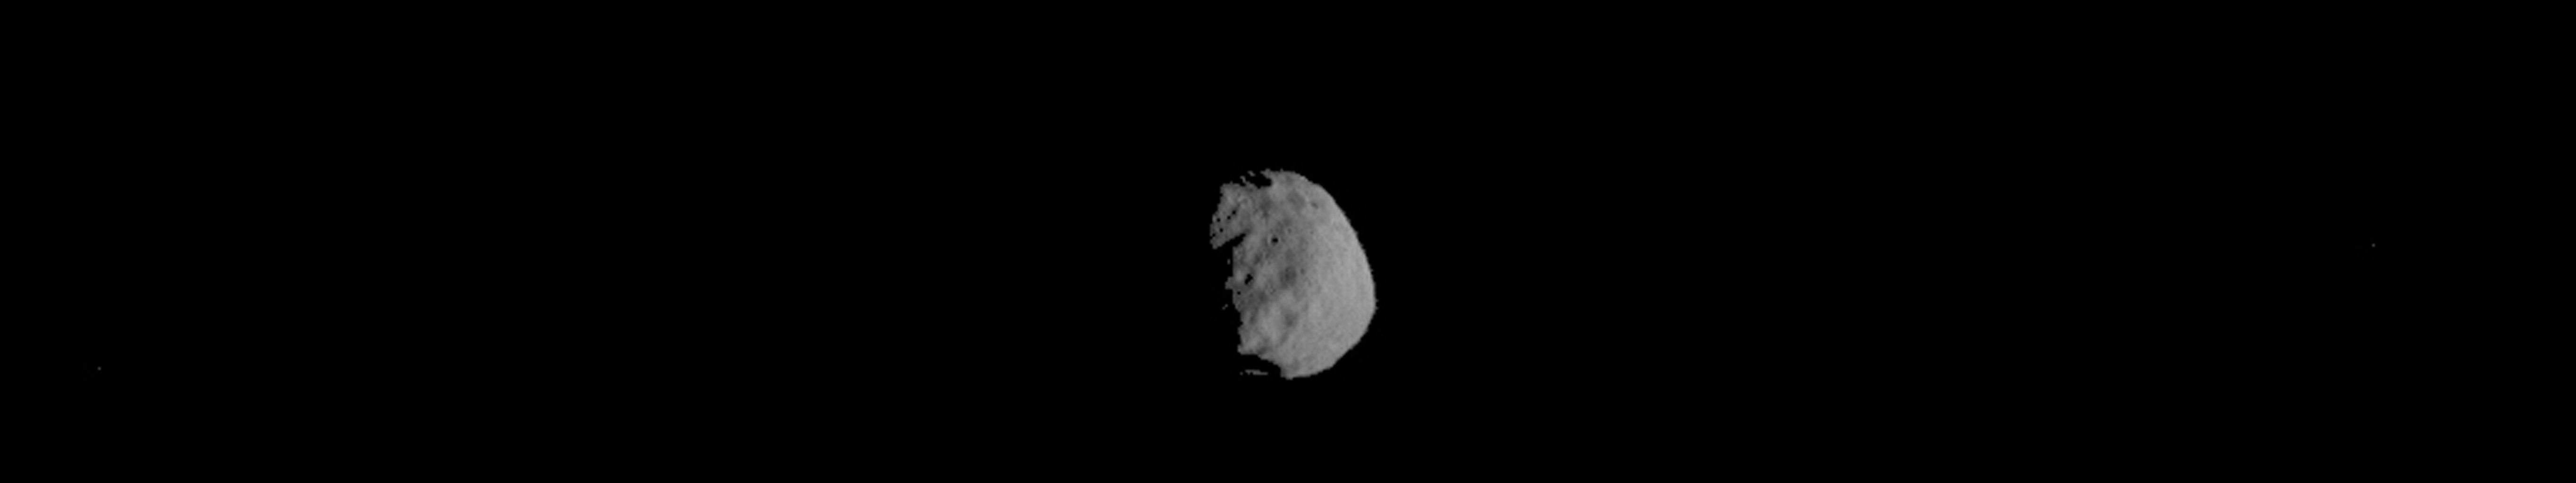 Examining Mars' Moon Phobos in a Different Light